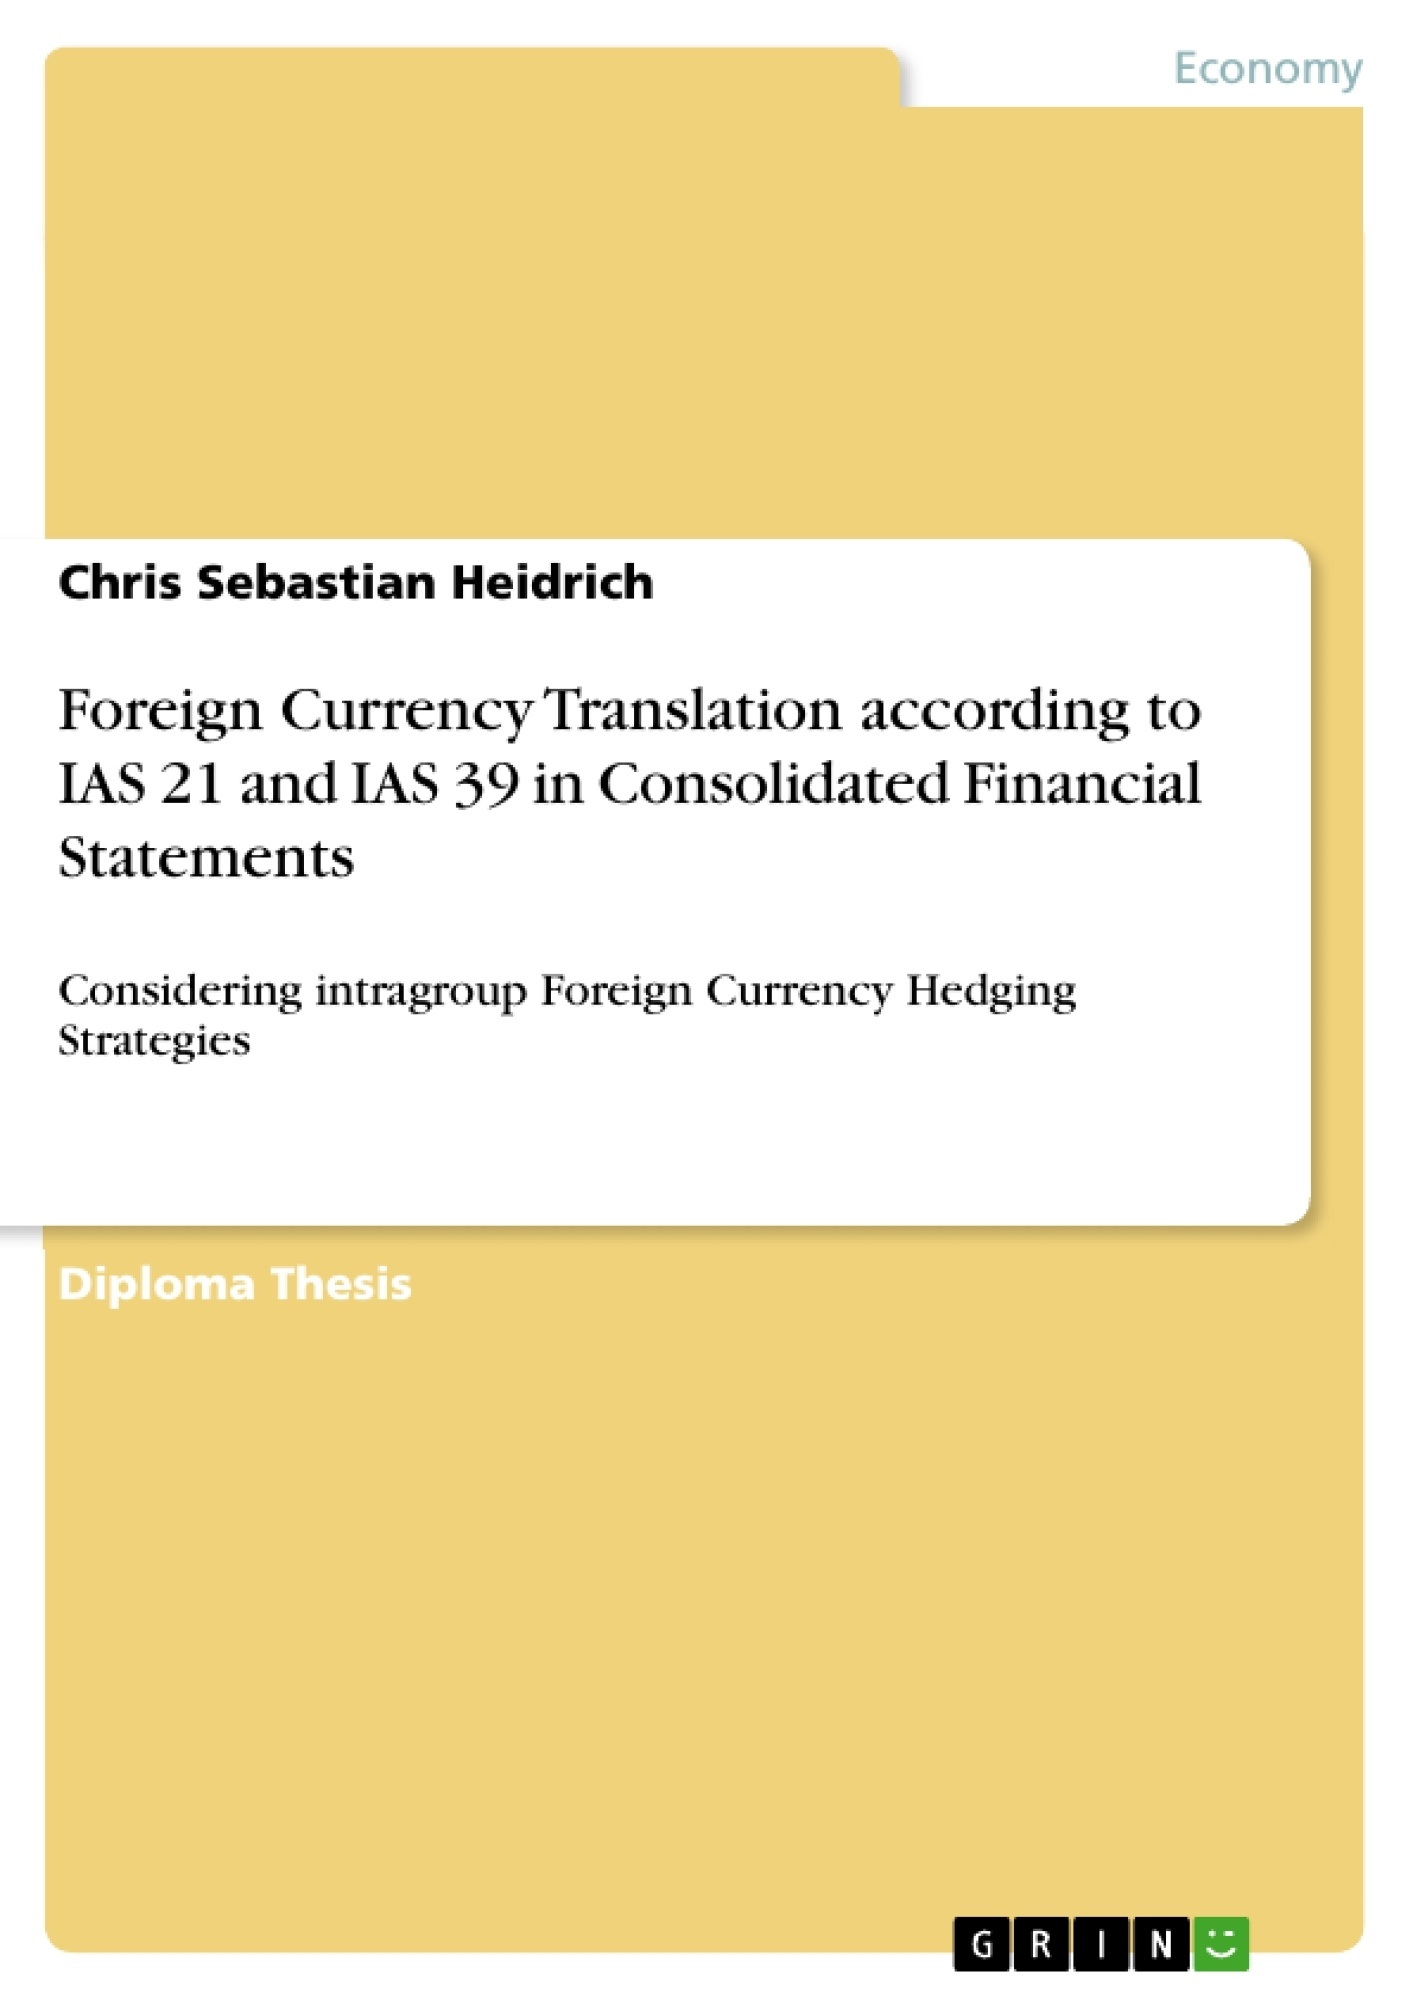 Title: Foreign Currency Translation according to IAS 21 and IAS 39 in Consolidated Financial Statements